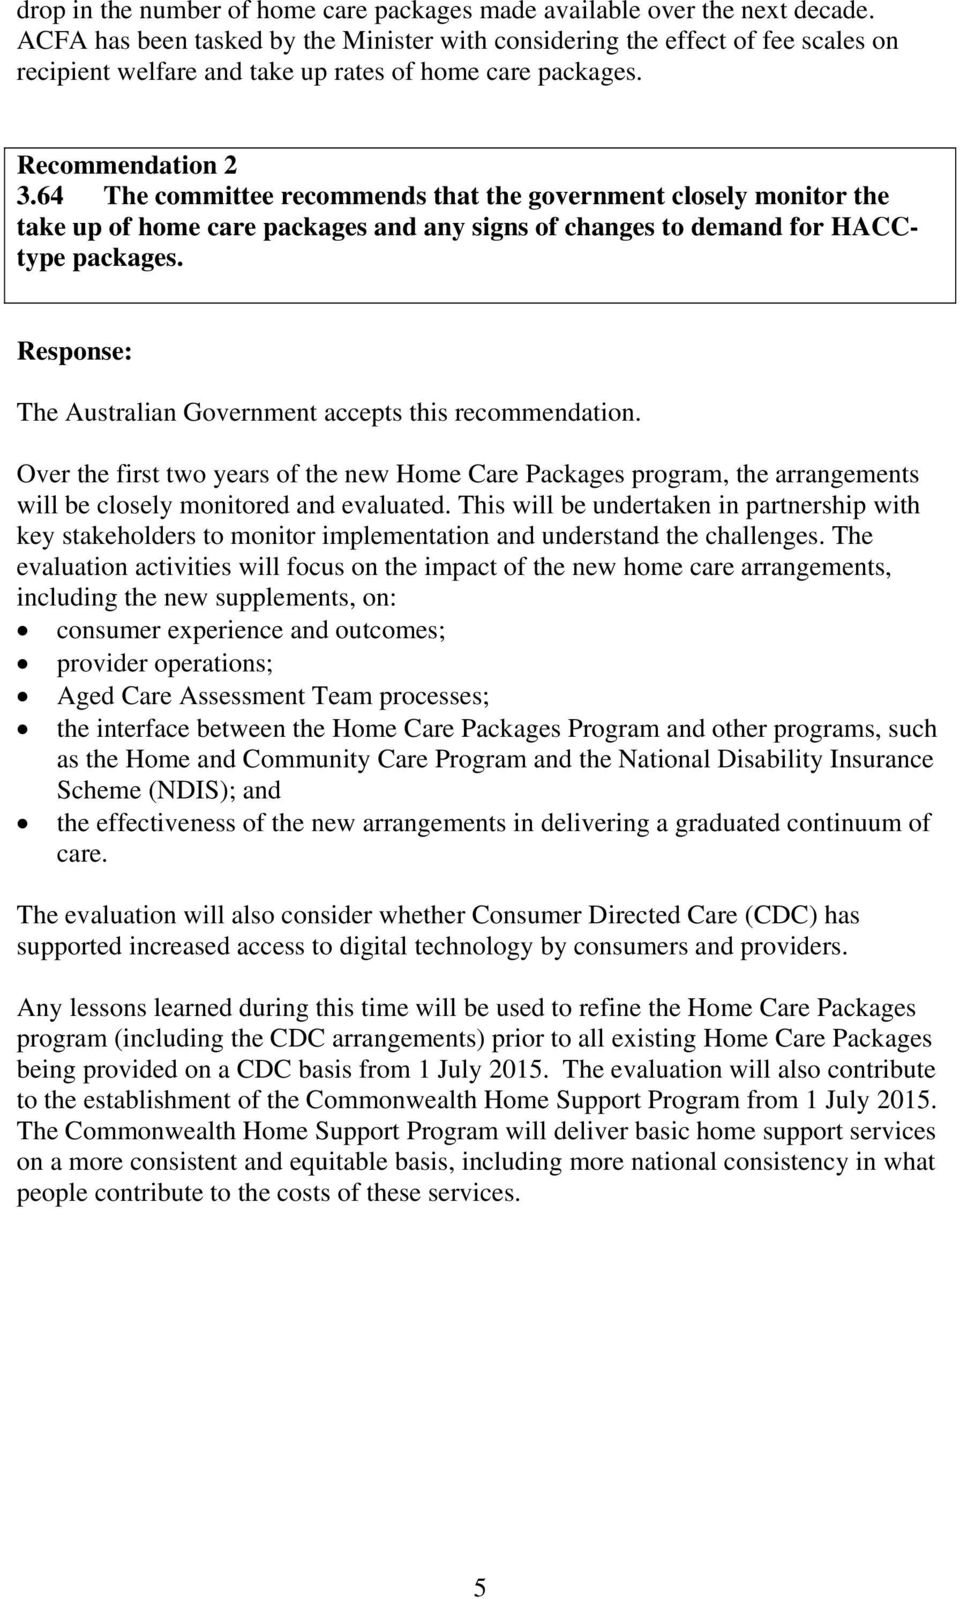 64 The committee recommends that the government closely monitor the take up of home care packages and any signs of changes to demand for HACCtype packages.